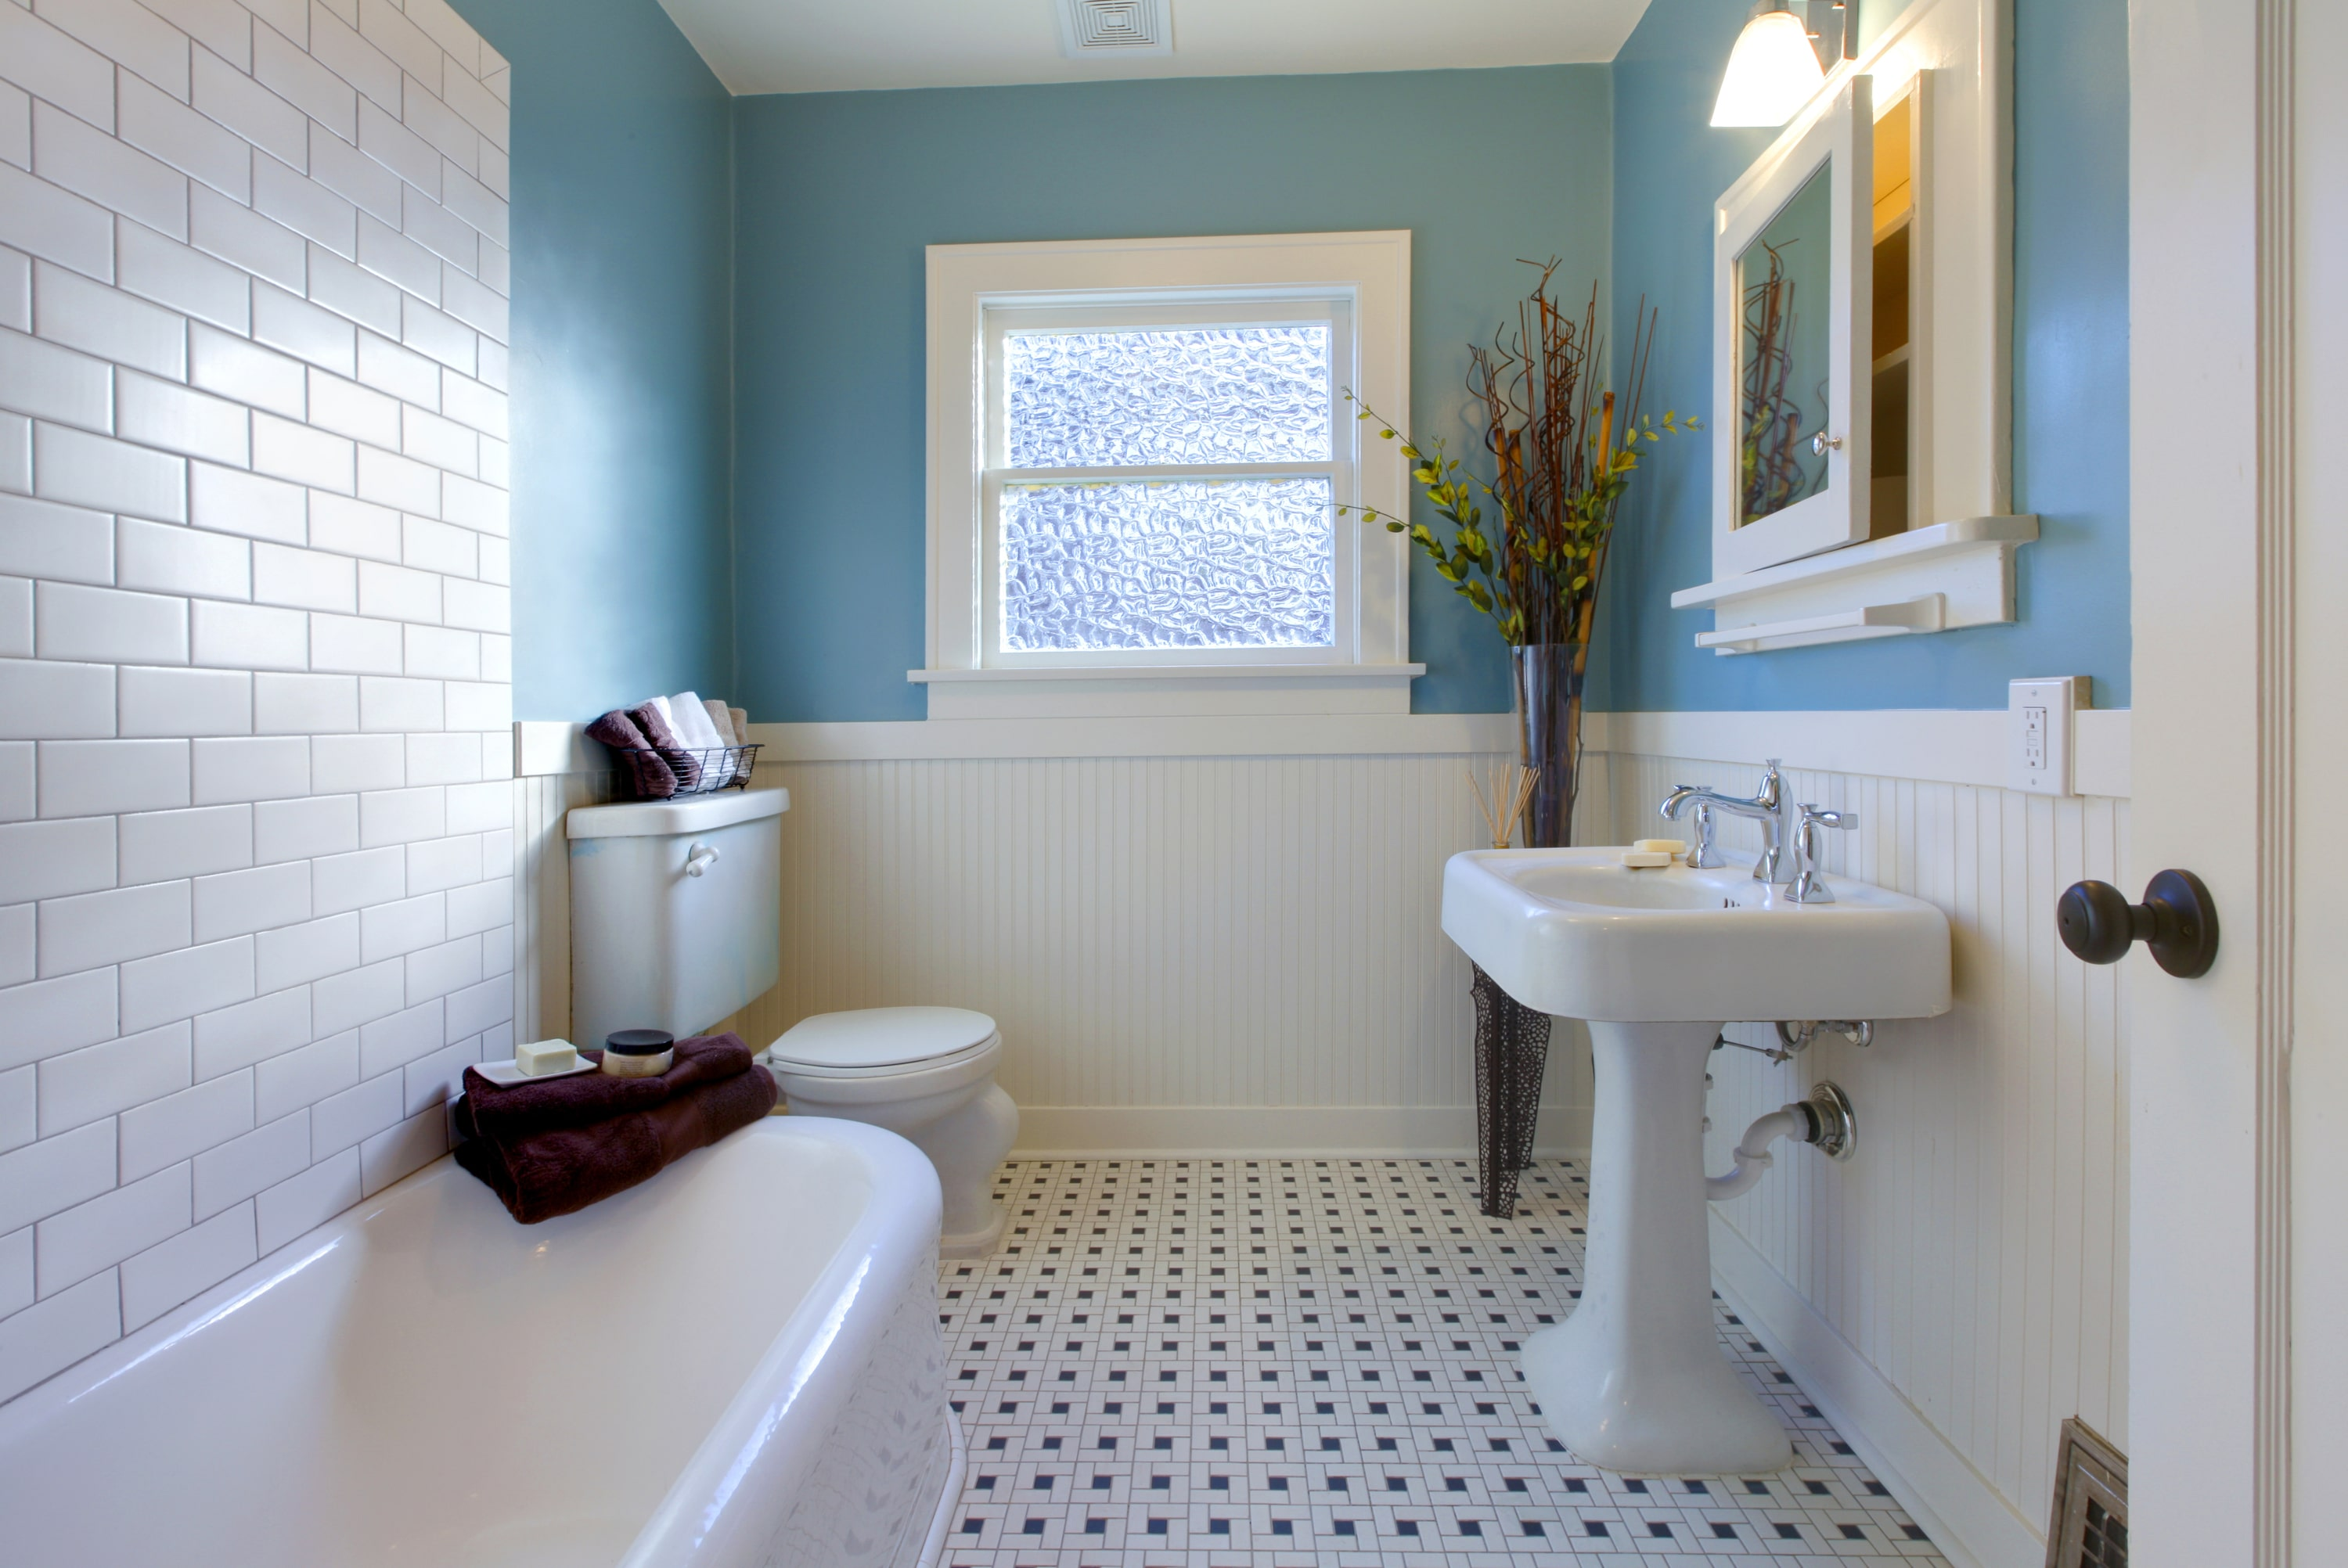 small bathroom design ideas on a budget 8 bathroom design remodeling ideas on a budget 9423